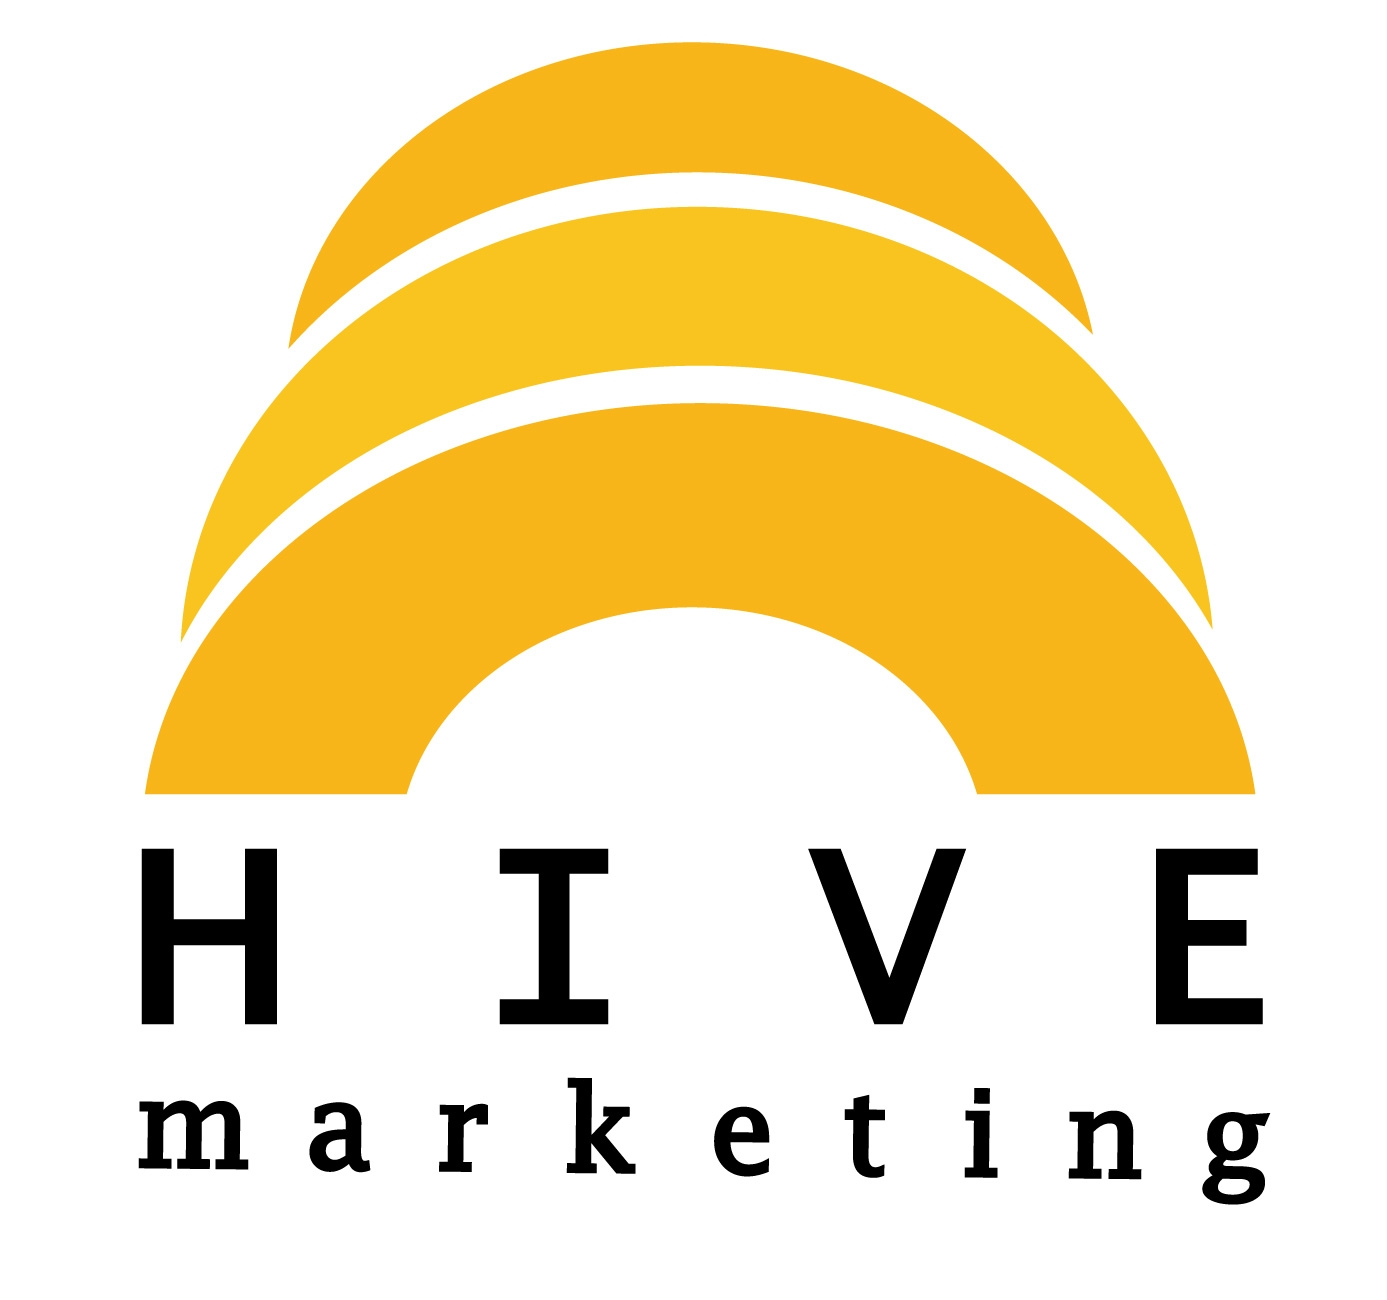 HIVE MARKETING